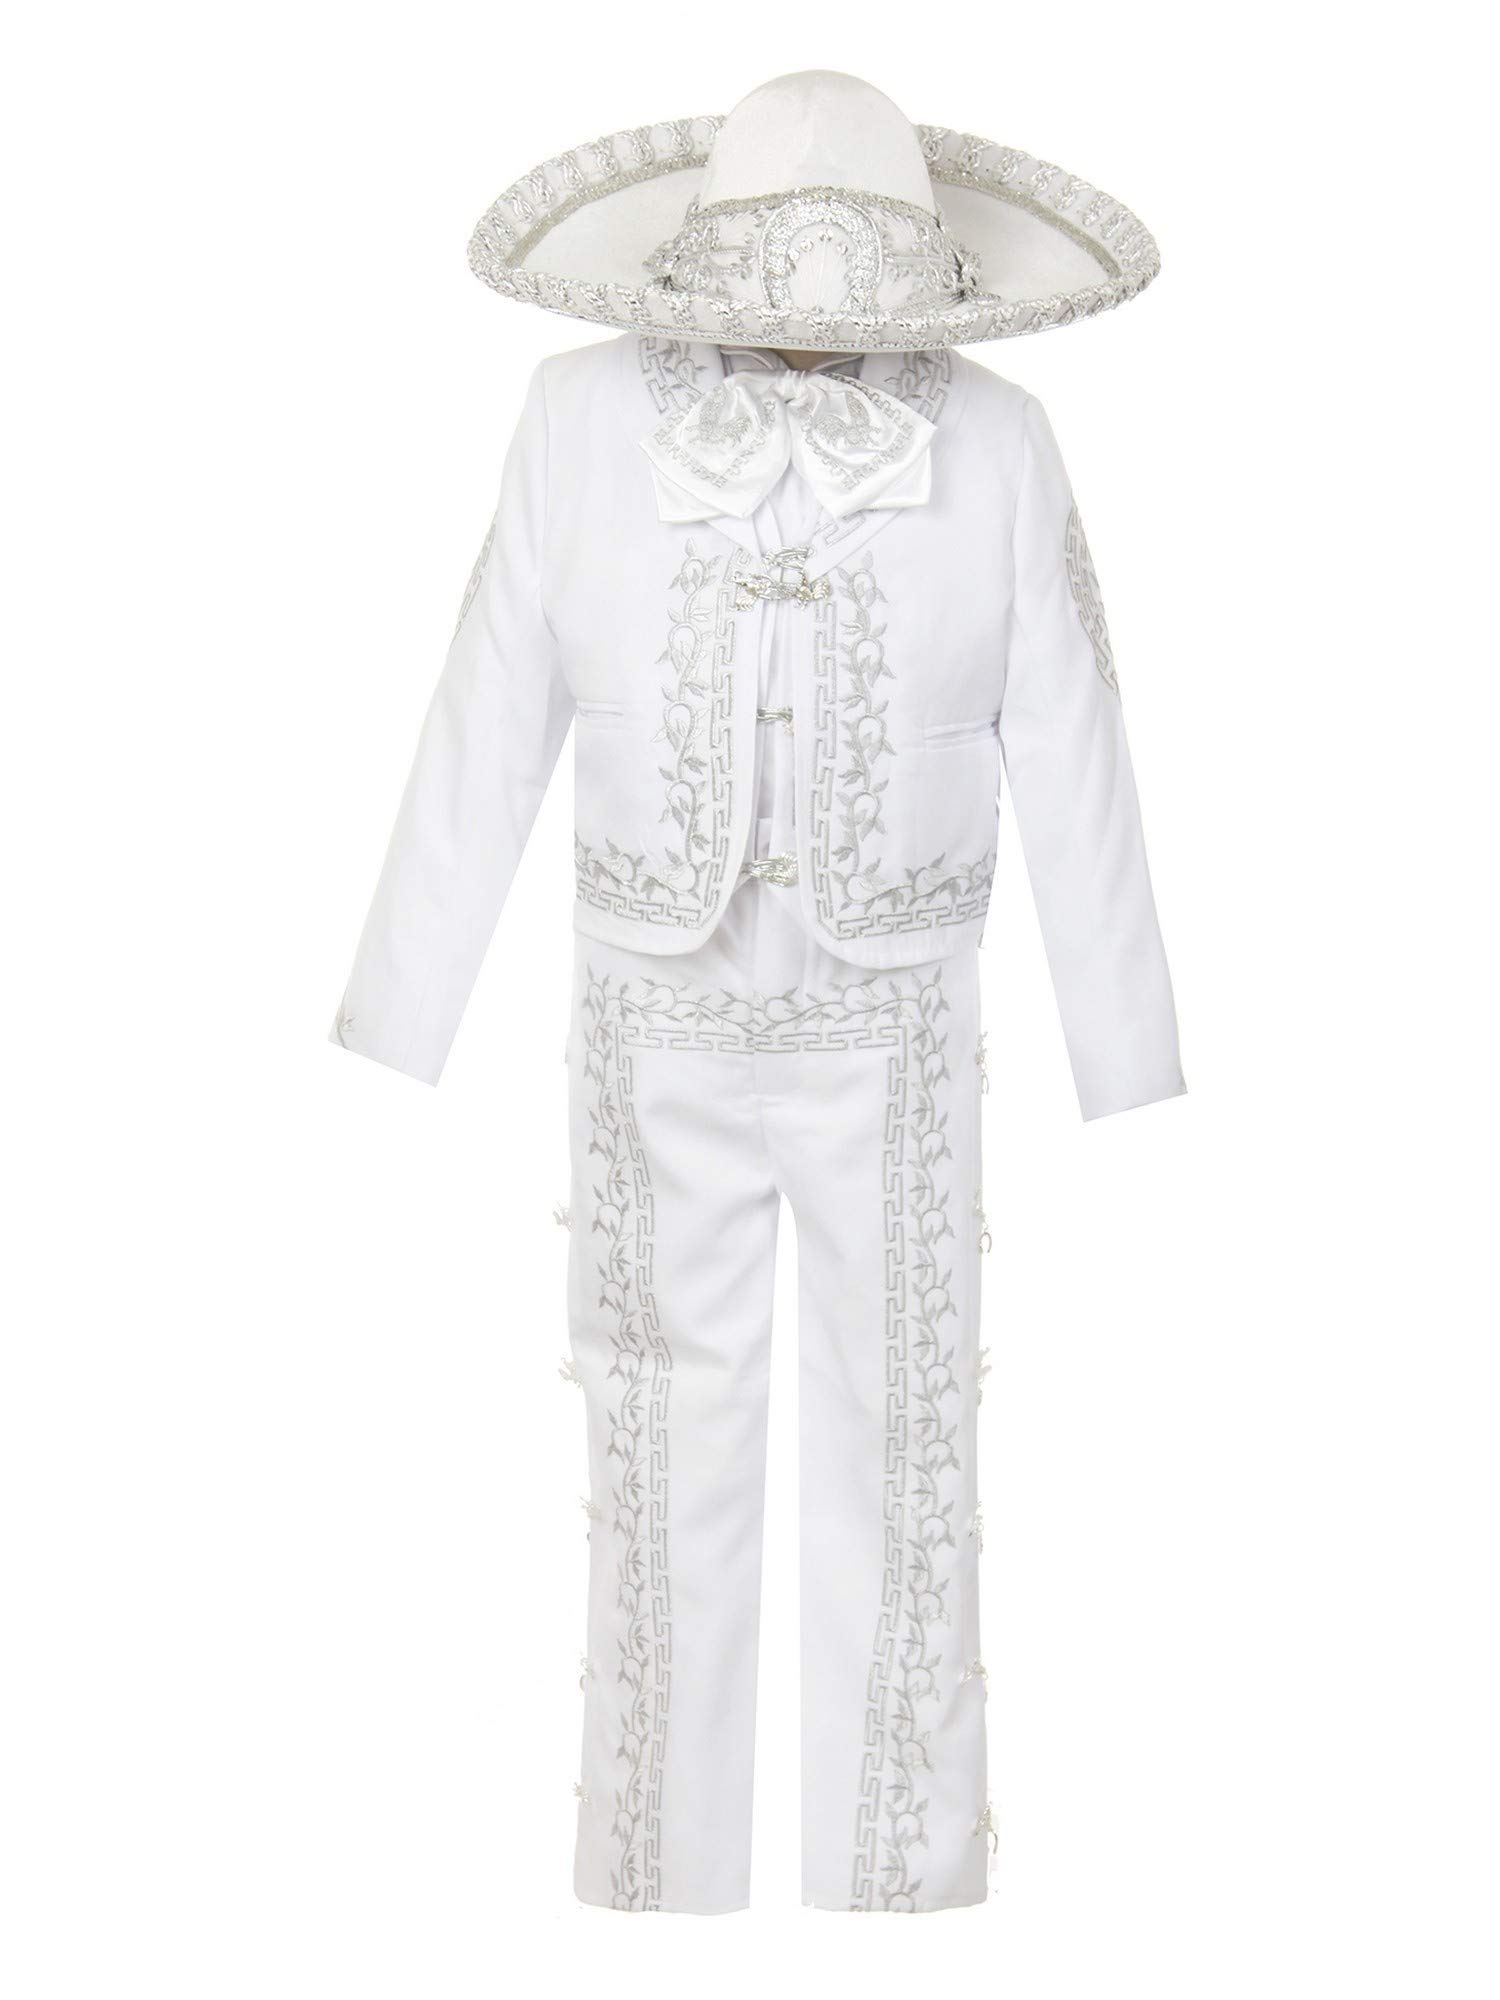 Rain Kids Baby Boys White Rooster Intricate Embroidery 6 Pc Charro Suit 12M by The Rain Kids